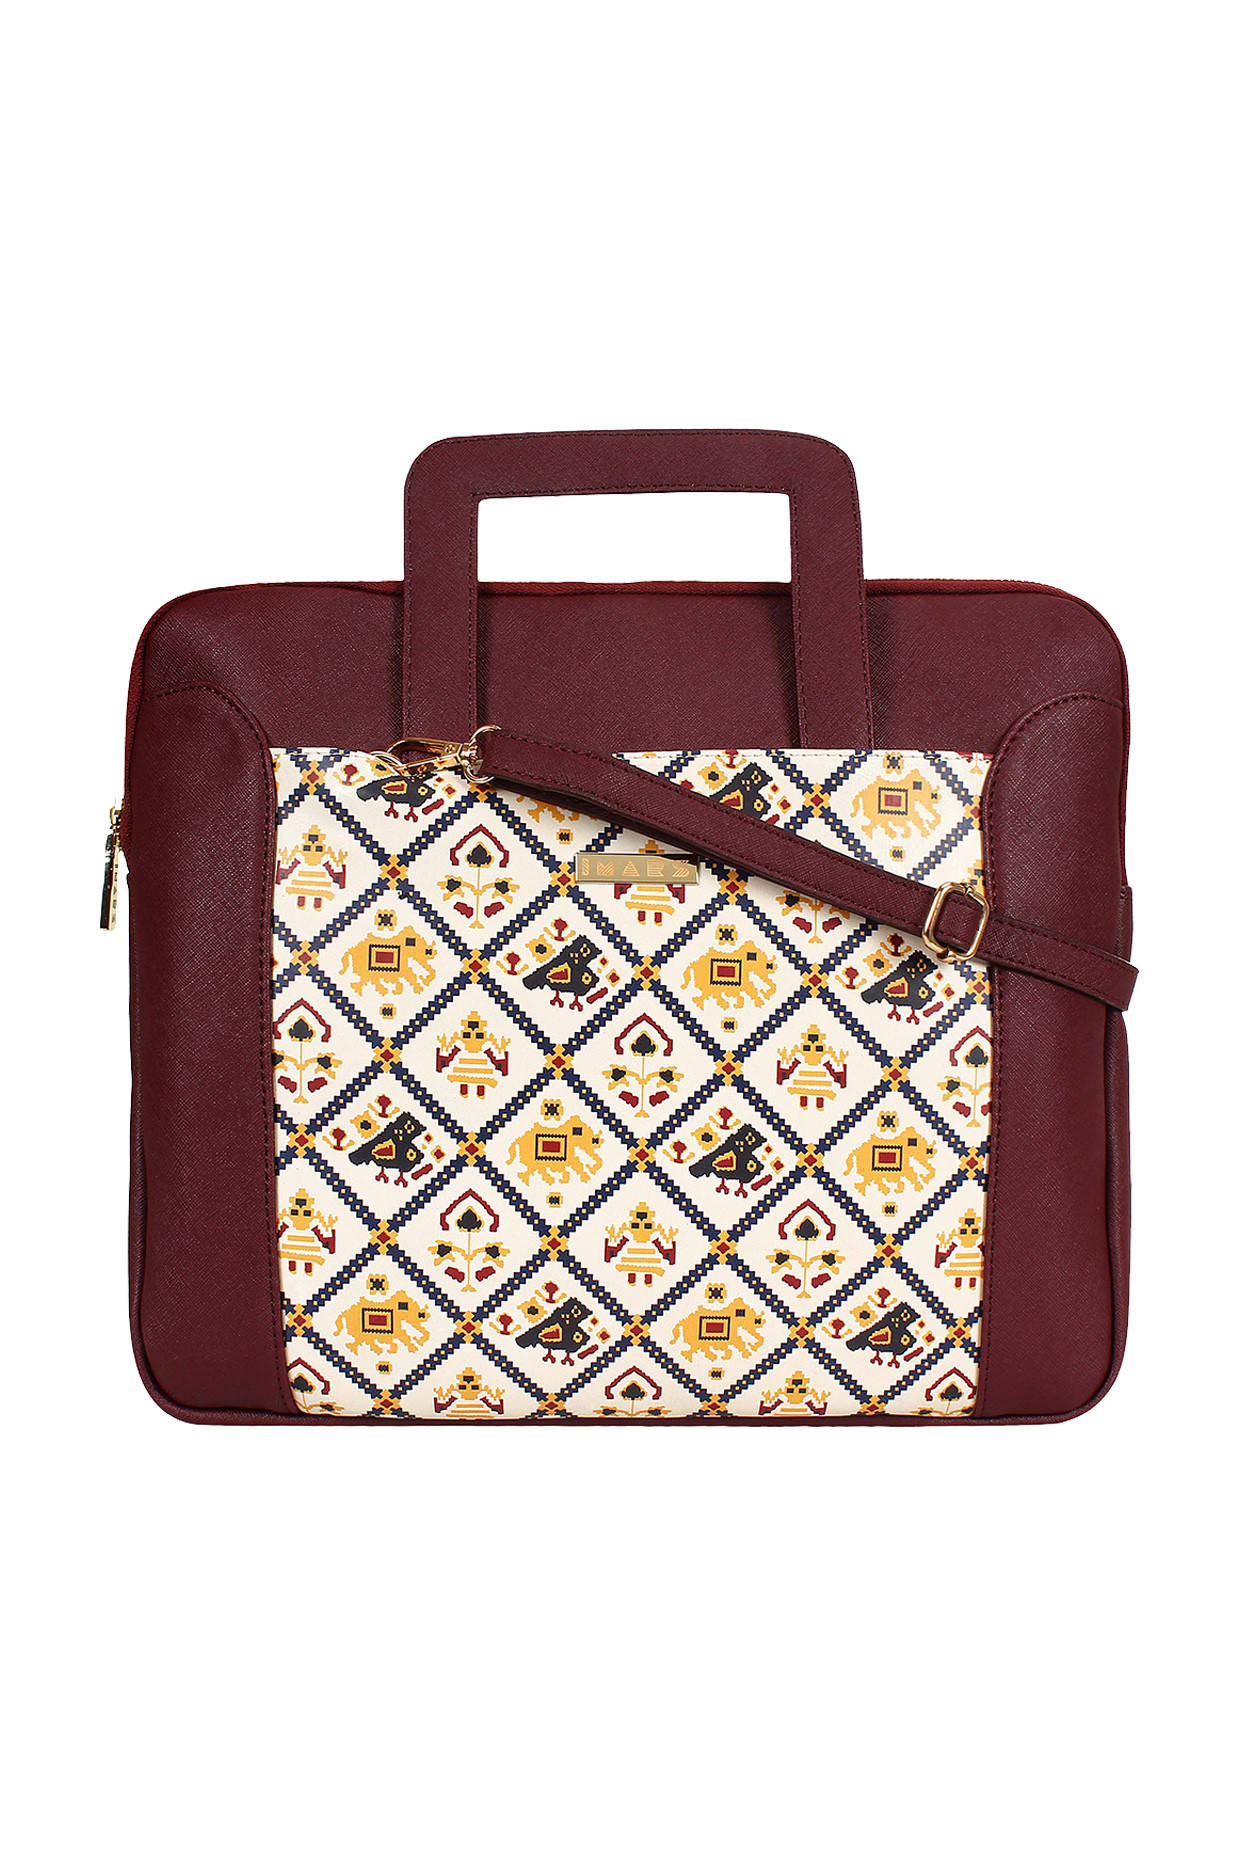 "Maroon 13.3"" Laptop Sleeve by Imars-Handpicked for You"